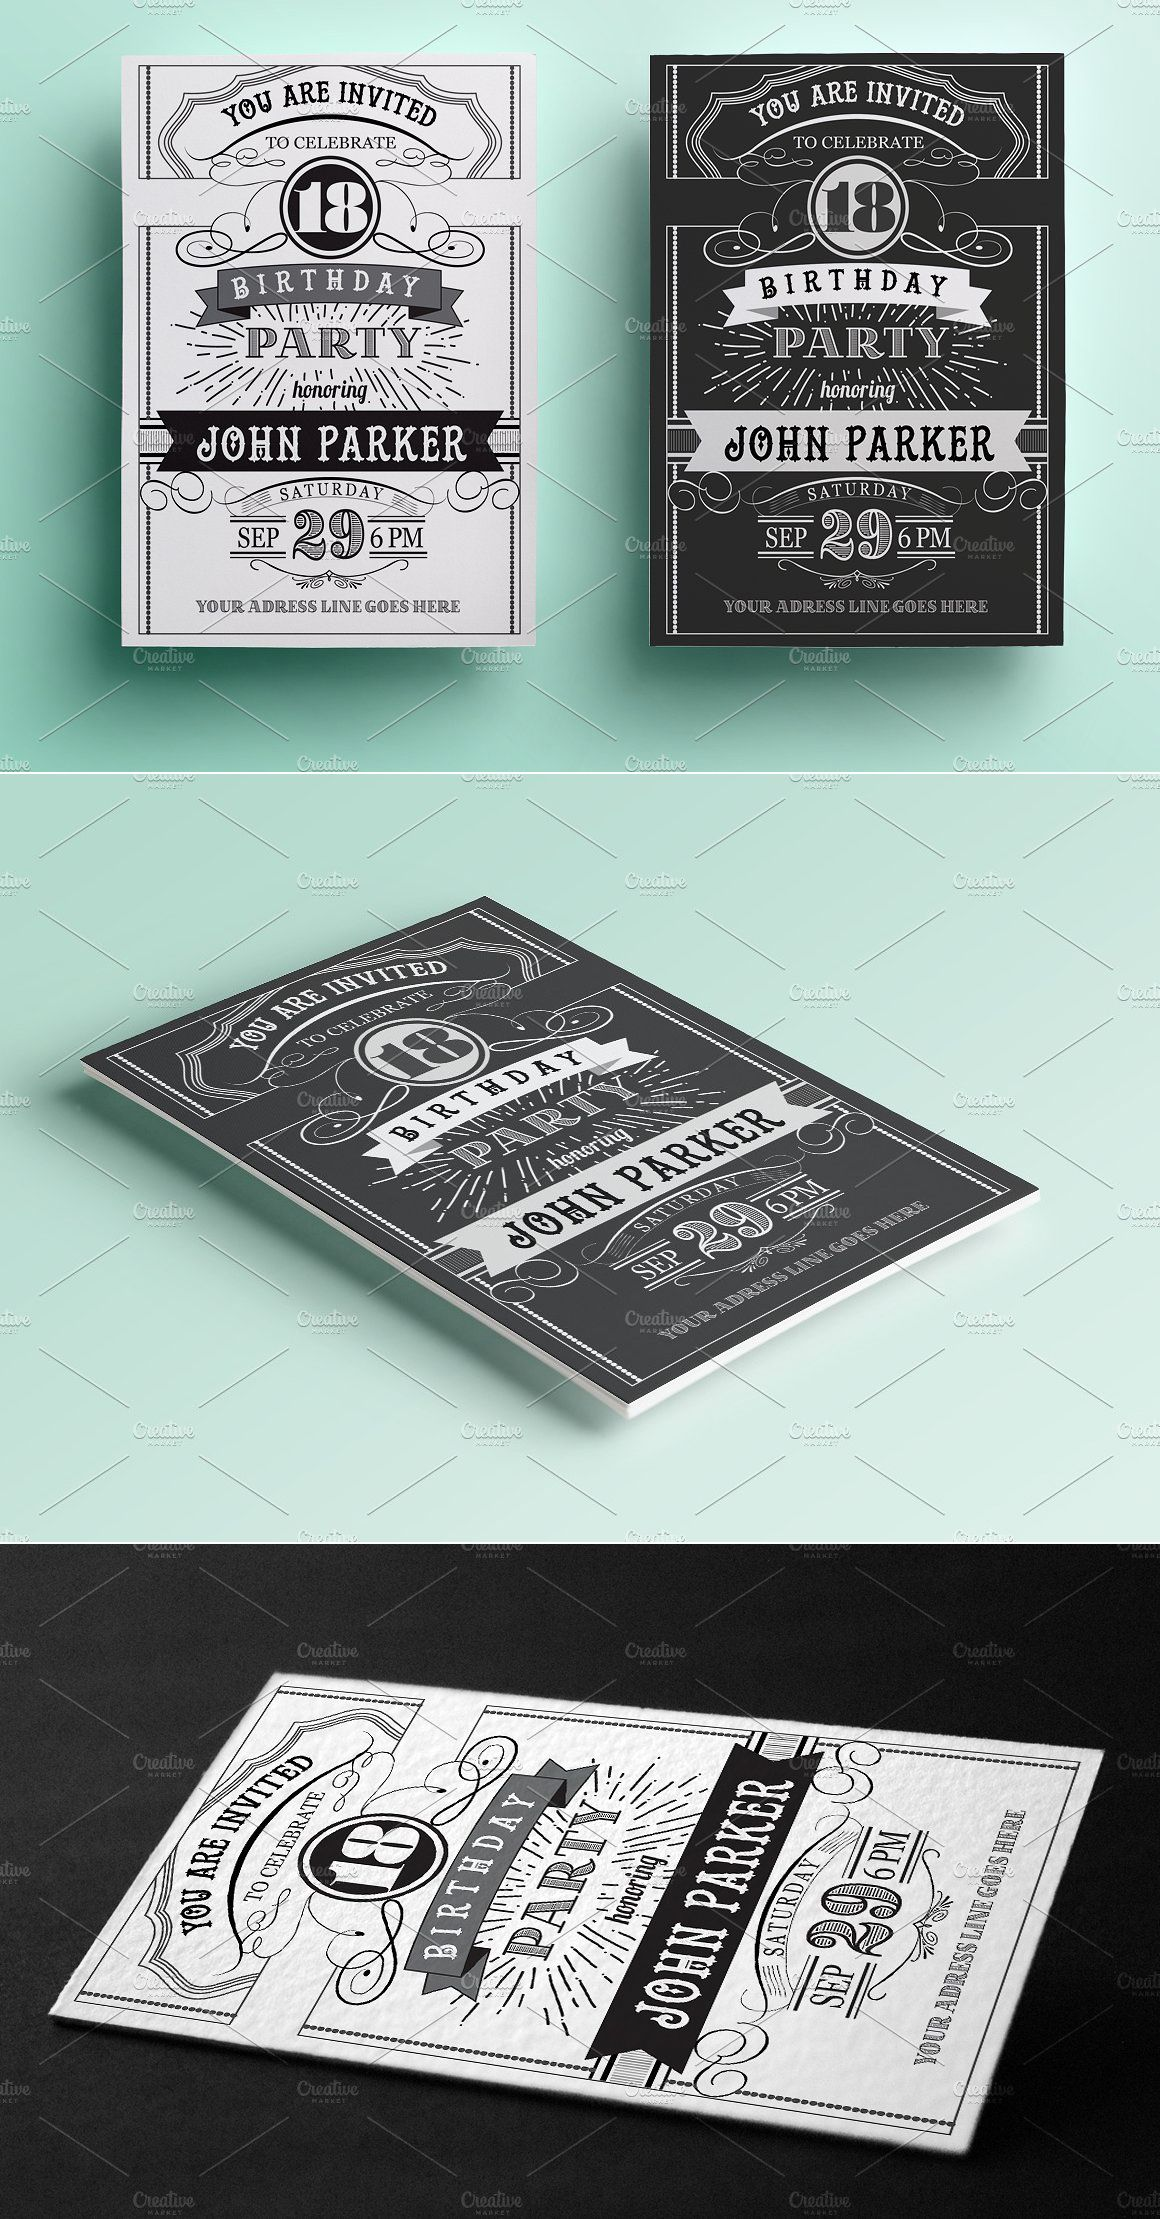 Vintage birthday invitation templates psd invitation templates vintage birthday invitation templates psd filmwisefo